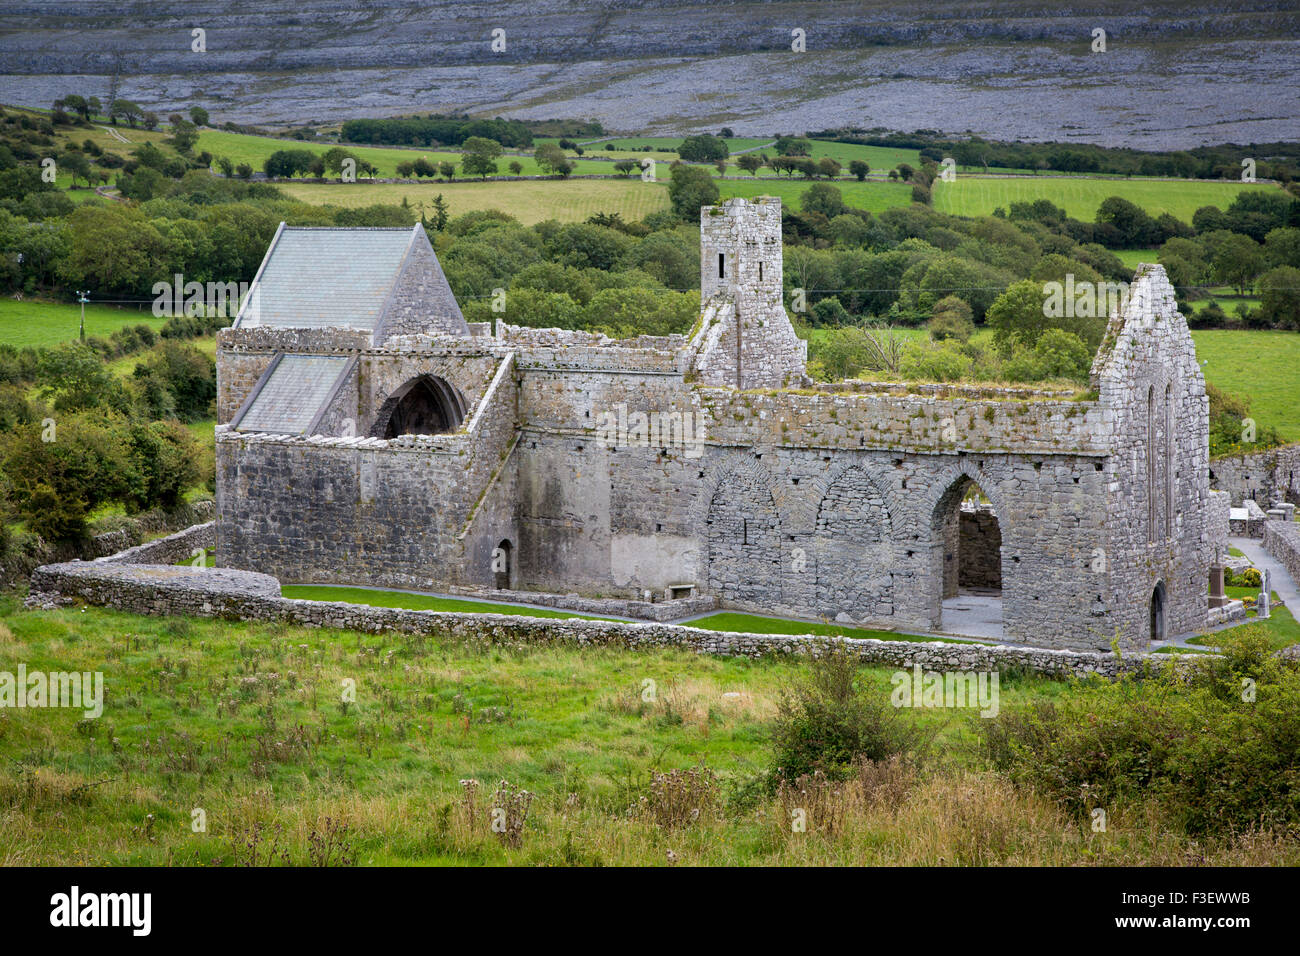 Ruins of 13th century Corcomroe Abbey near Ballyvaughan in the Burren Region of County Claire, Republic of Ireland - Stock Image